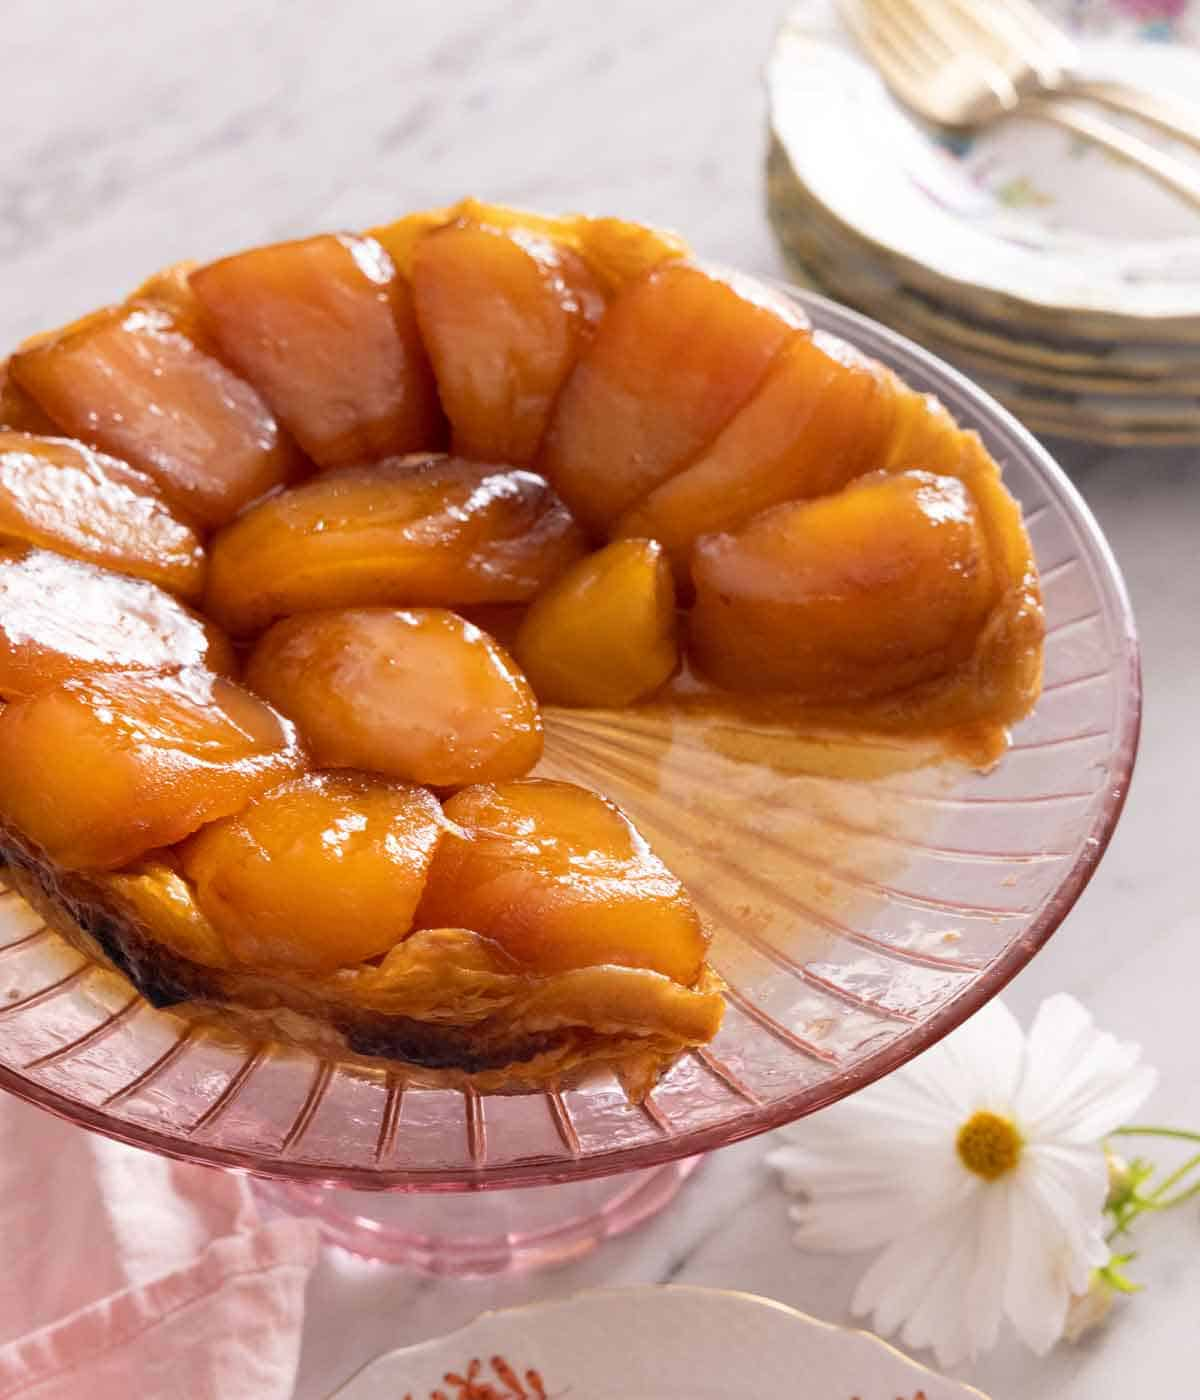 A tarte Tatin with a slice cut out of it on a serving platter.